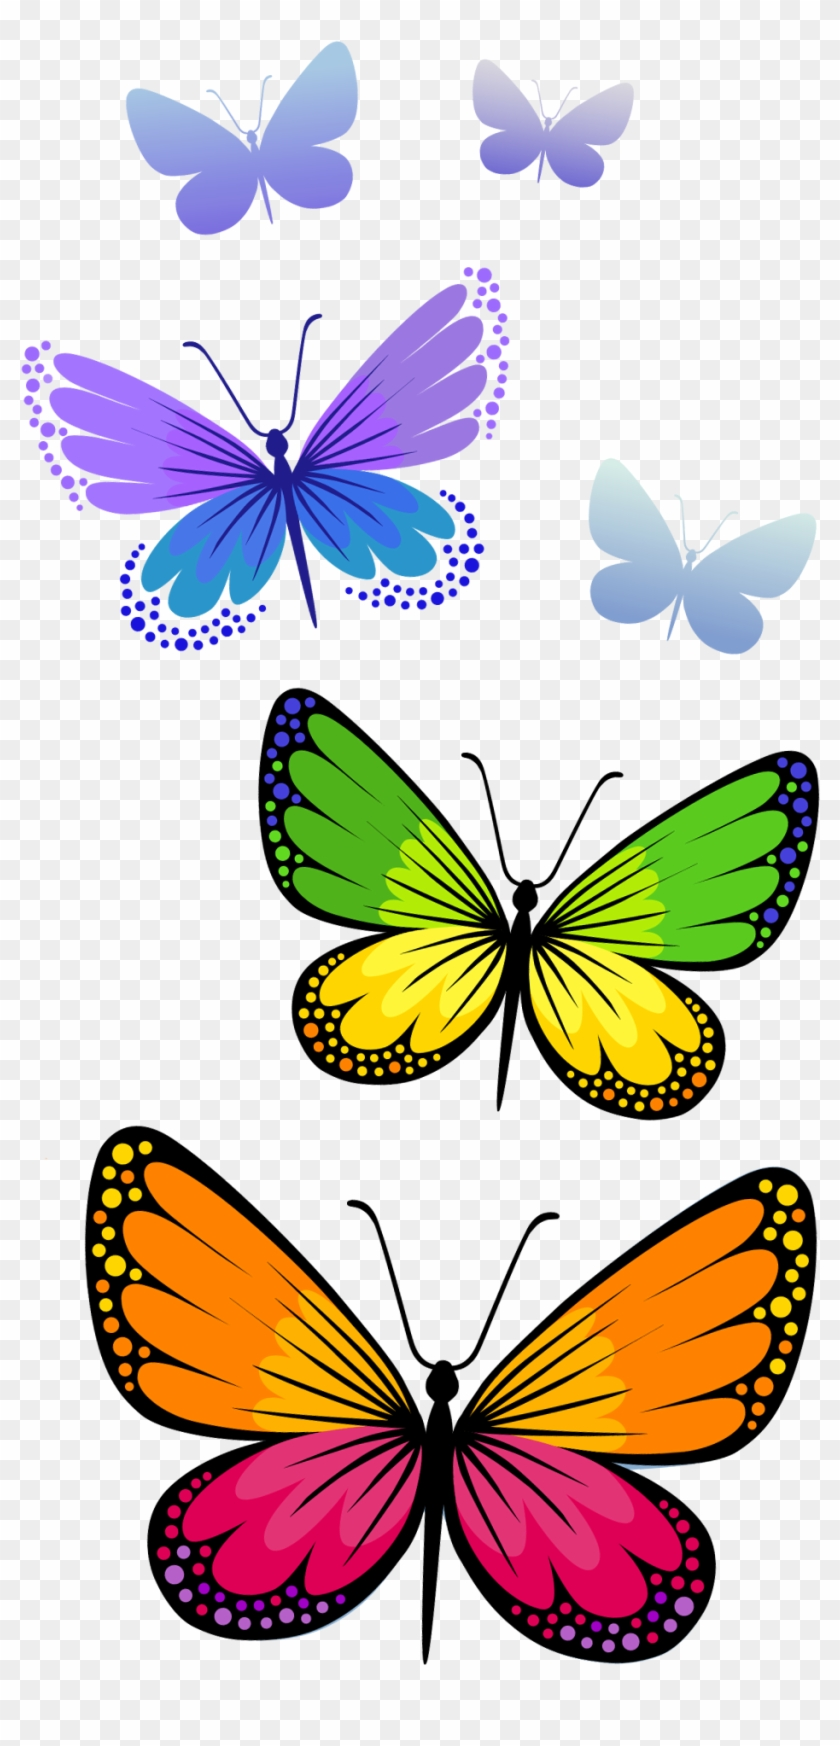 Butterflies Composition Png Clipart Image - Butterfly Clipart Png #3287